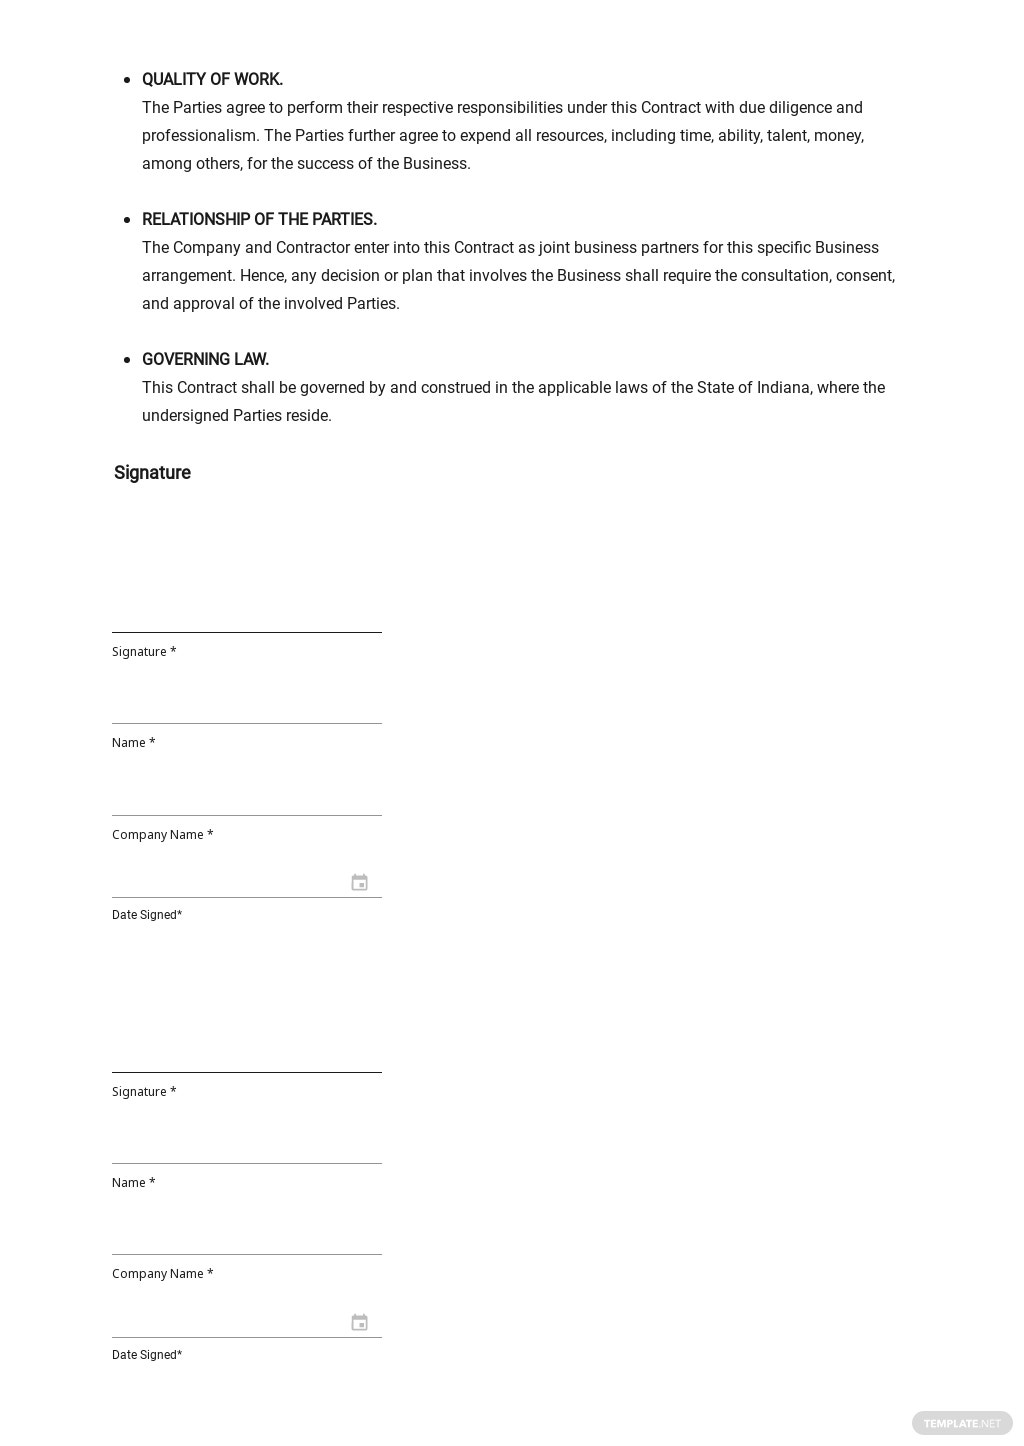 Business Agreement Contract Template 3.jpe